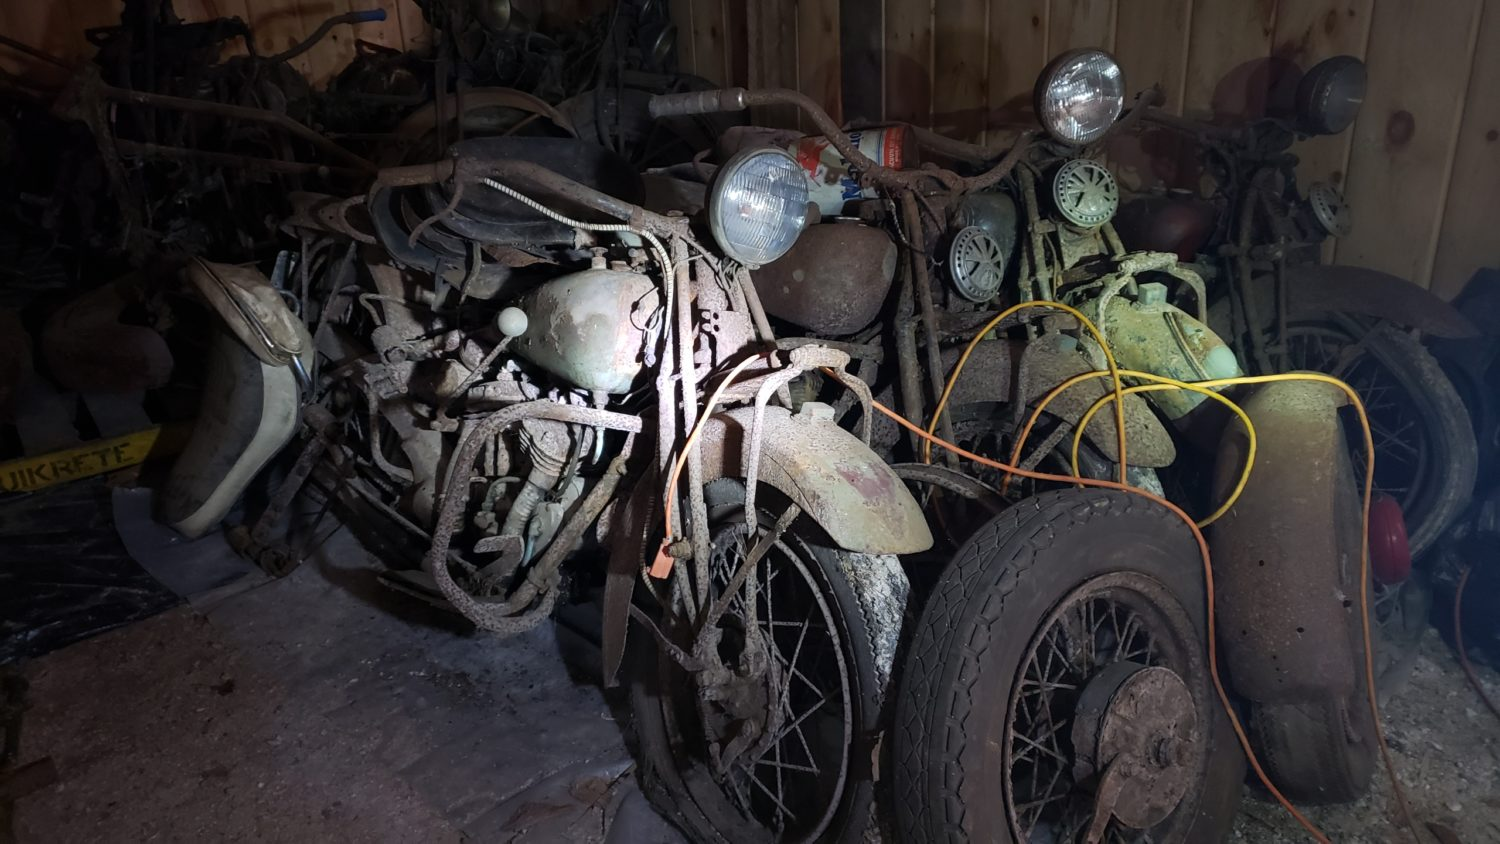 AMAZING Indian Motorcycle Hoard, Race Cars, Collector Car, Collectibles & More!  - image 5